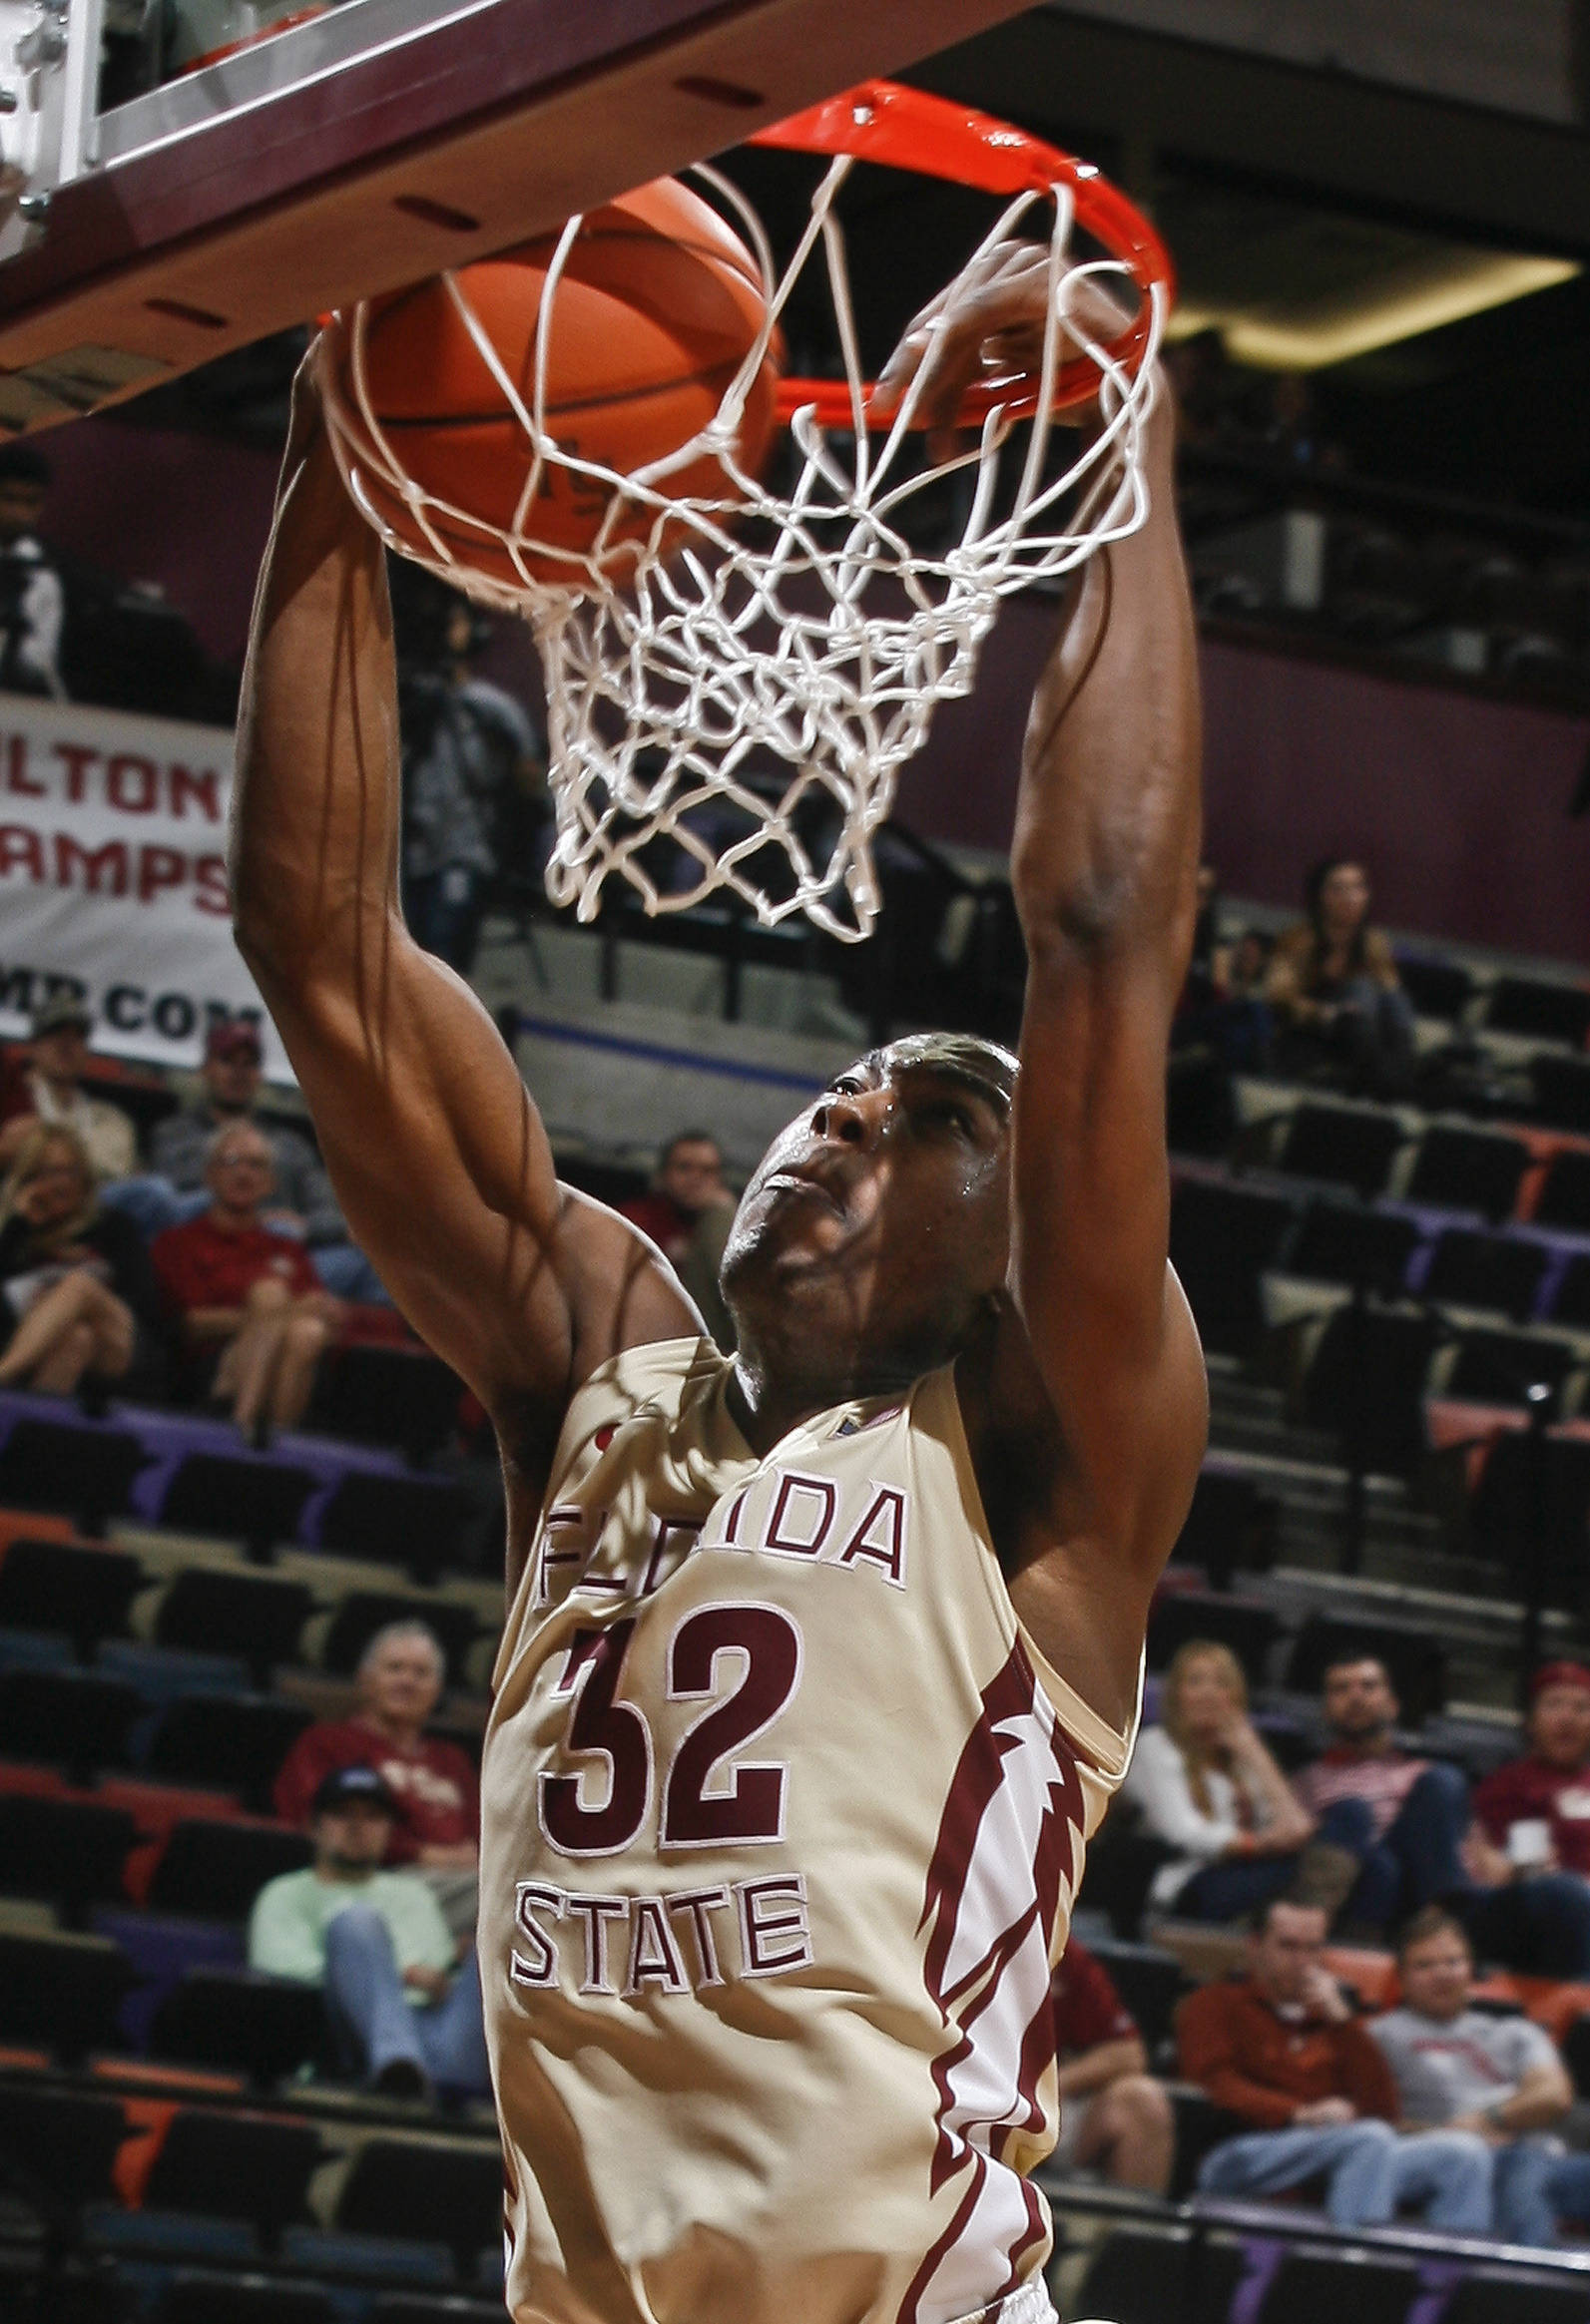 Feb 5, 2014; Tallahassee, FL, USA; Seminoles guard Montay Brandon (32) dunks after stealing the ball in the second half. Phil Sears-USA TODAY Sports